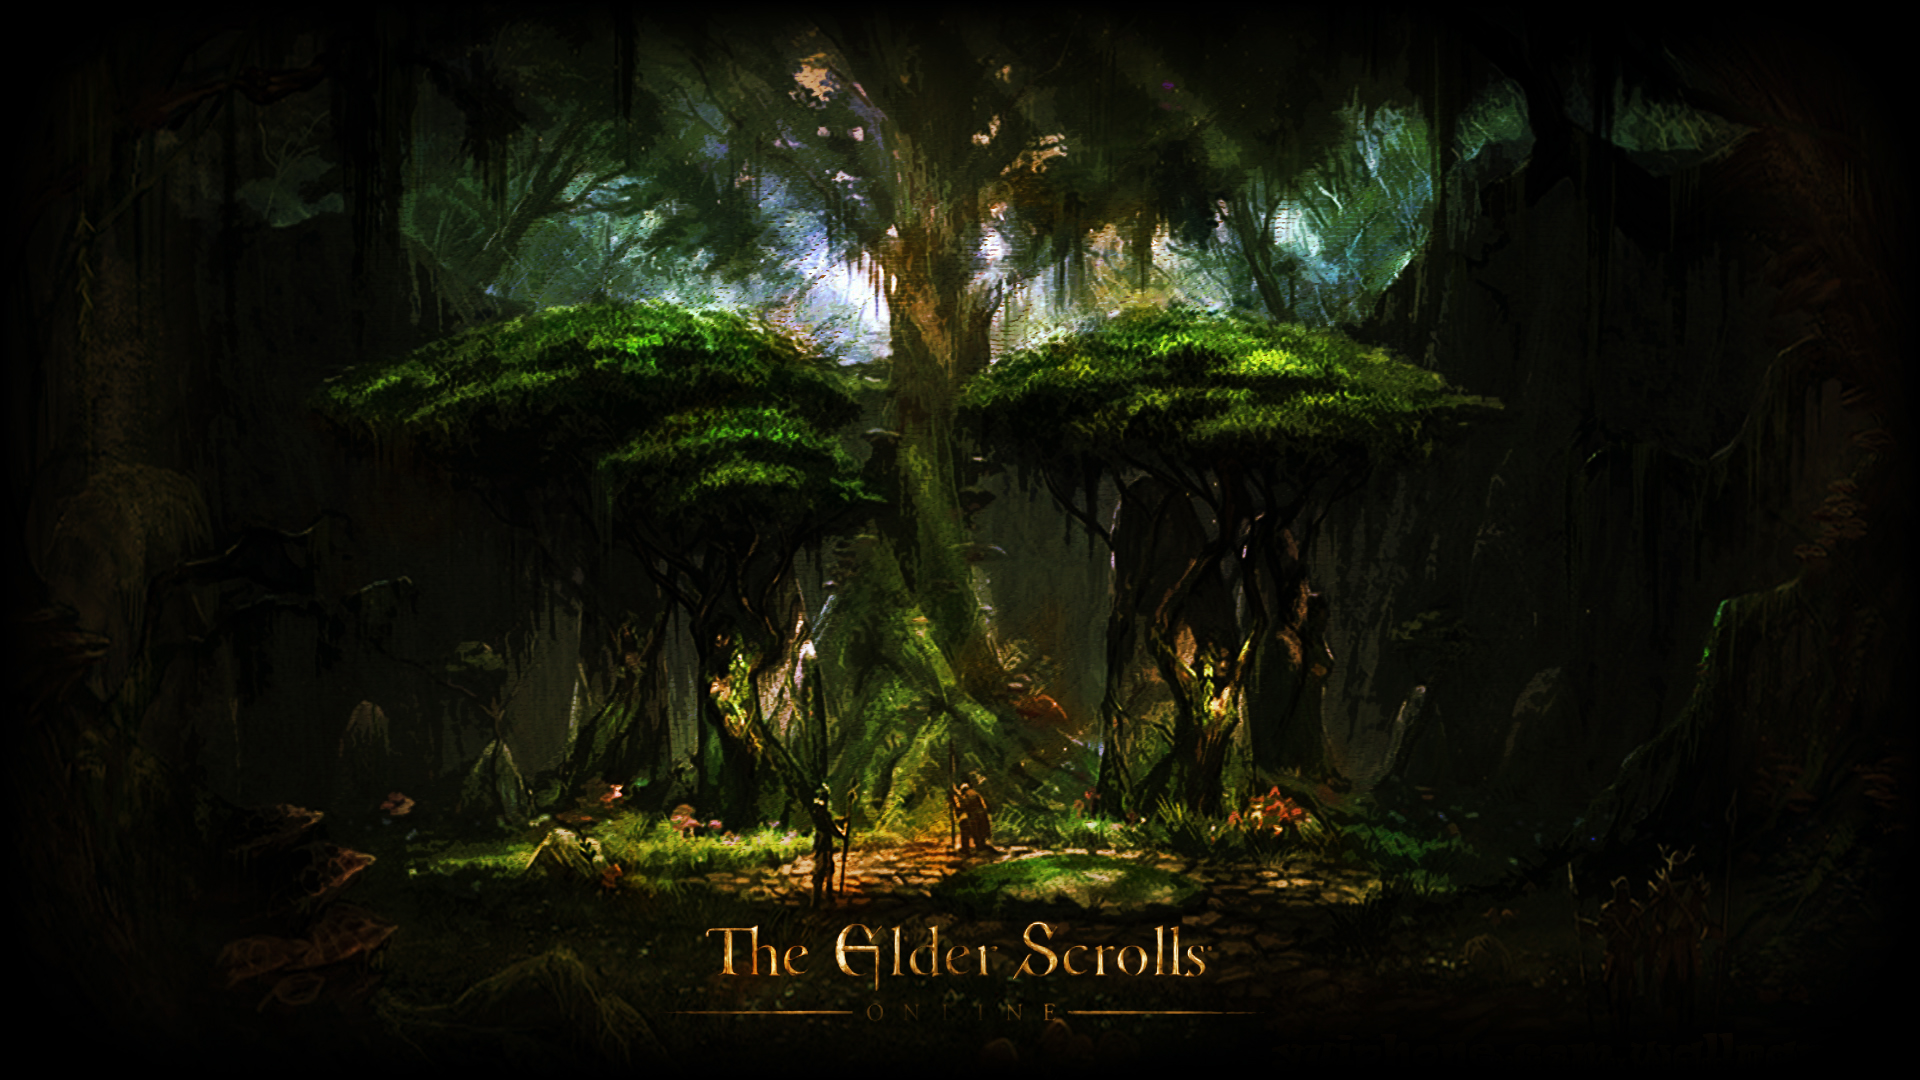 The Elder Scrolls Online Wallpaper 6